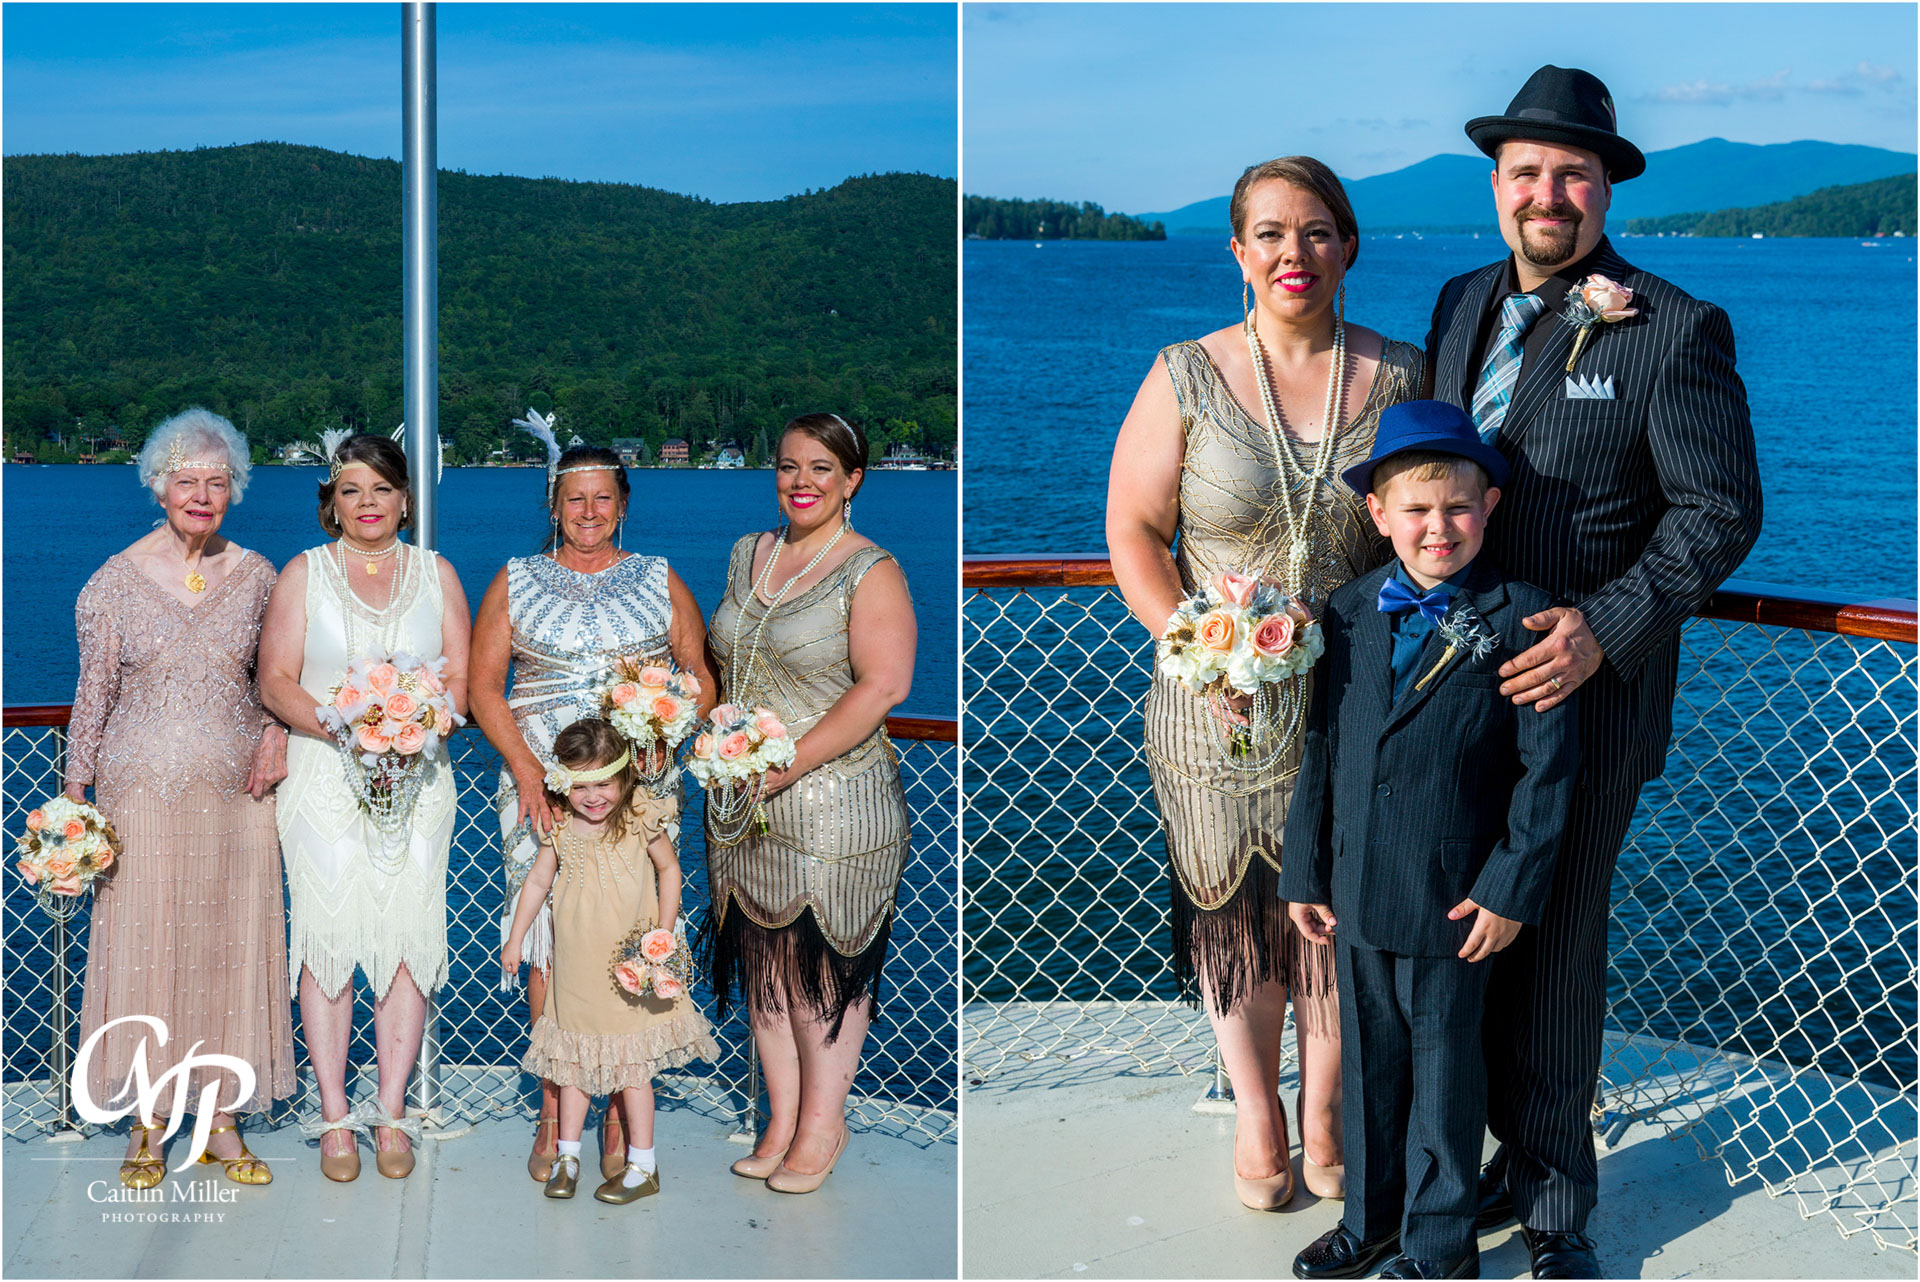 bombard-19.jpg from Jan and Robert's vow renewal on shoreline Cruise's Adirondac Boat on Lake George, NY by Saratoga Wedding Photographer Caitlin Miller Photography. Lake George Wedding Photographer. Stamford wedding photographer. Albany wedding photographer. Shoreline Cruises Wedding Photographer. Saratoga Wedding Photographer